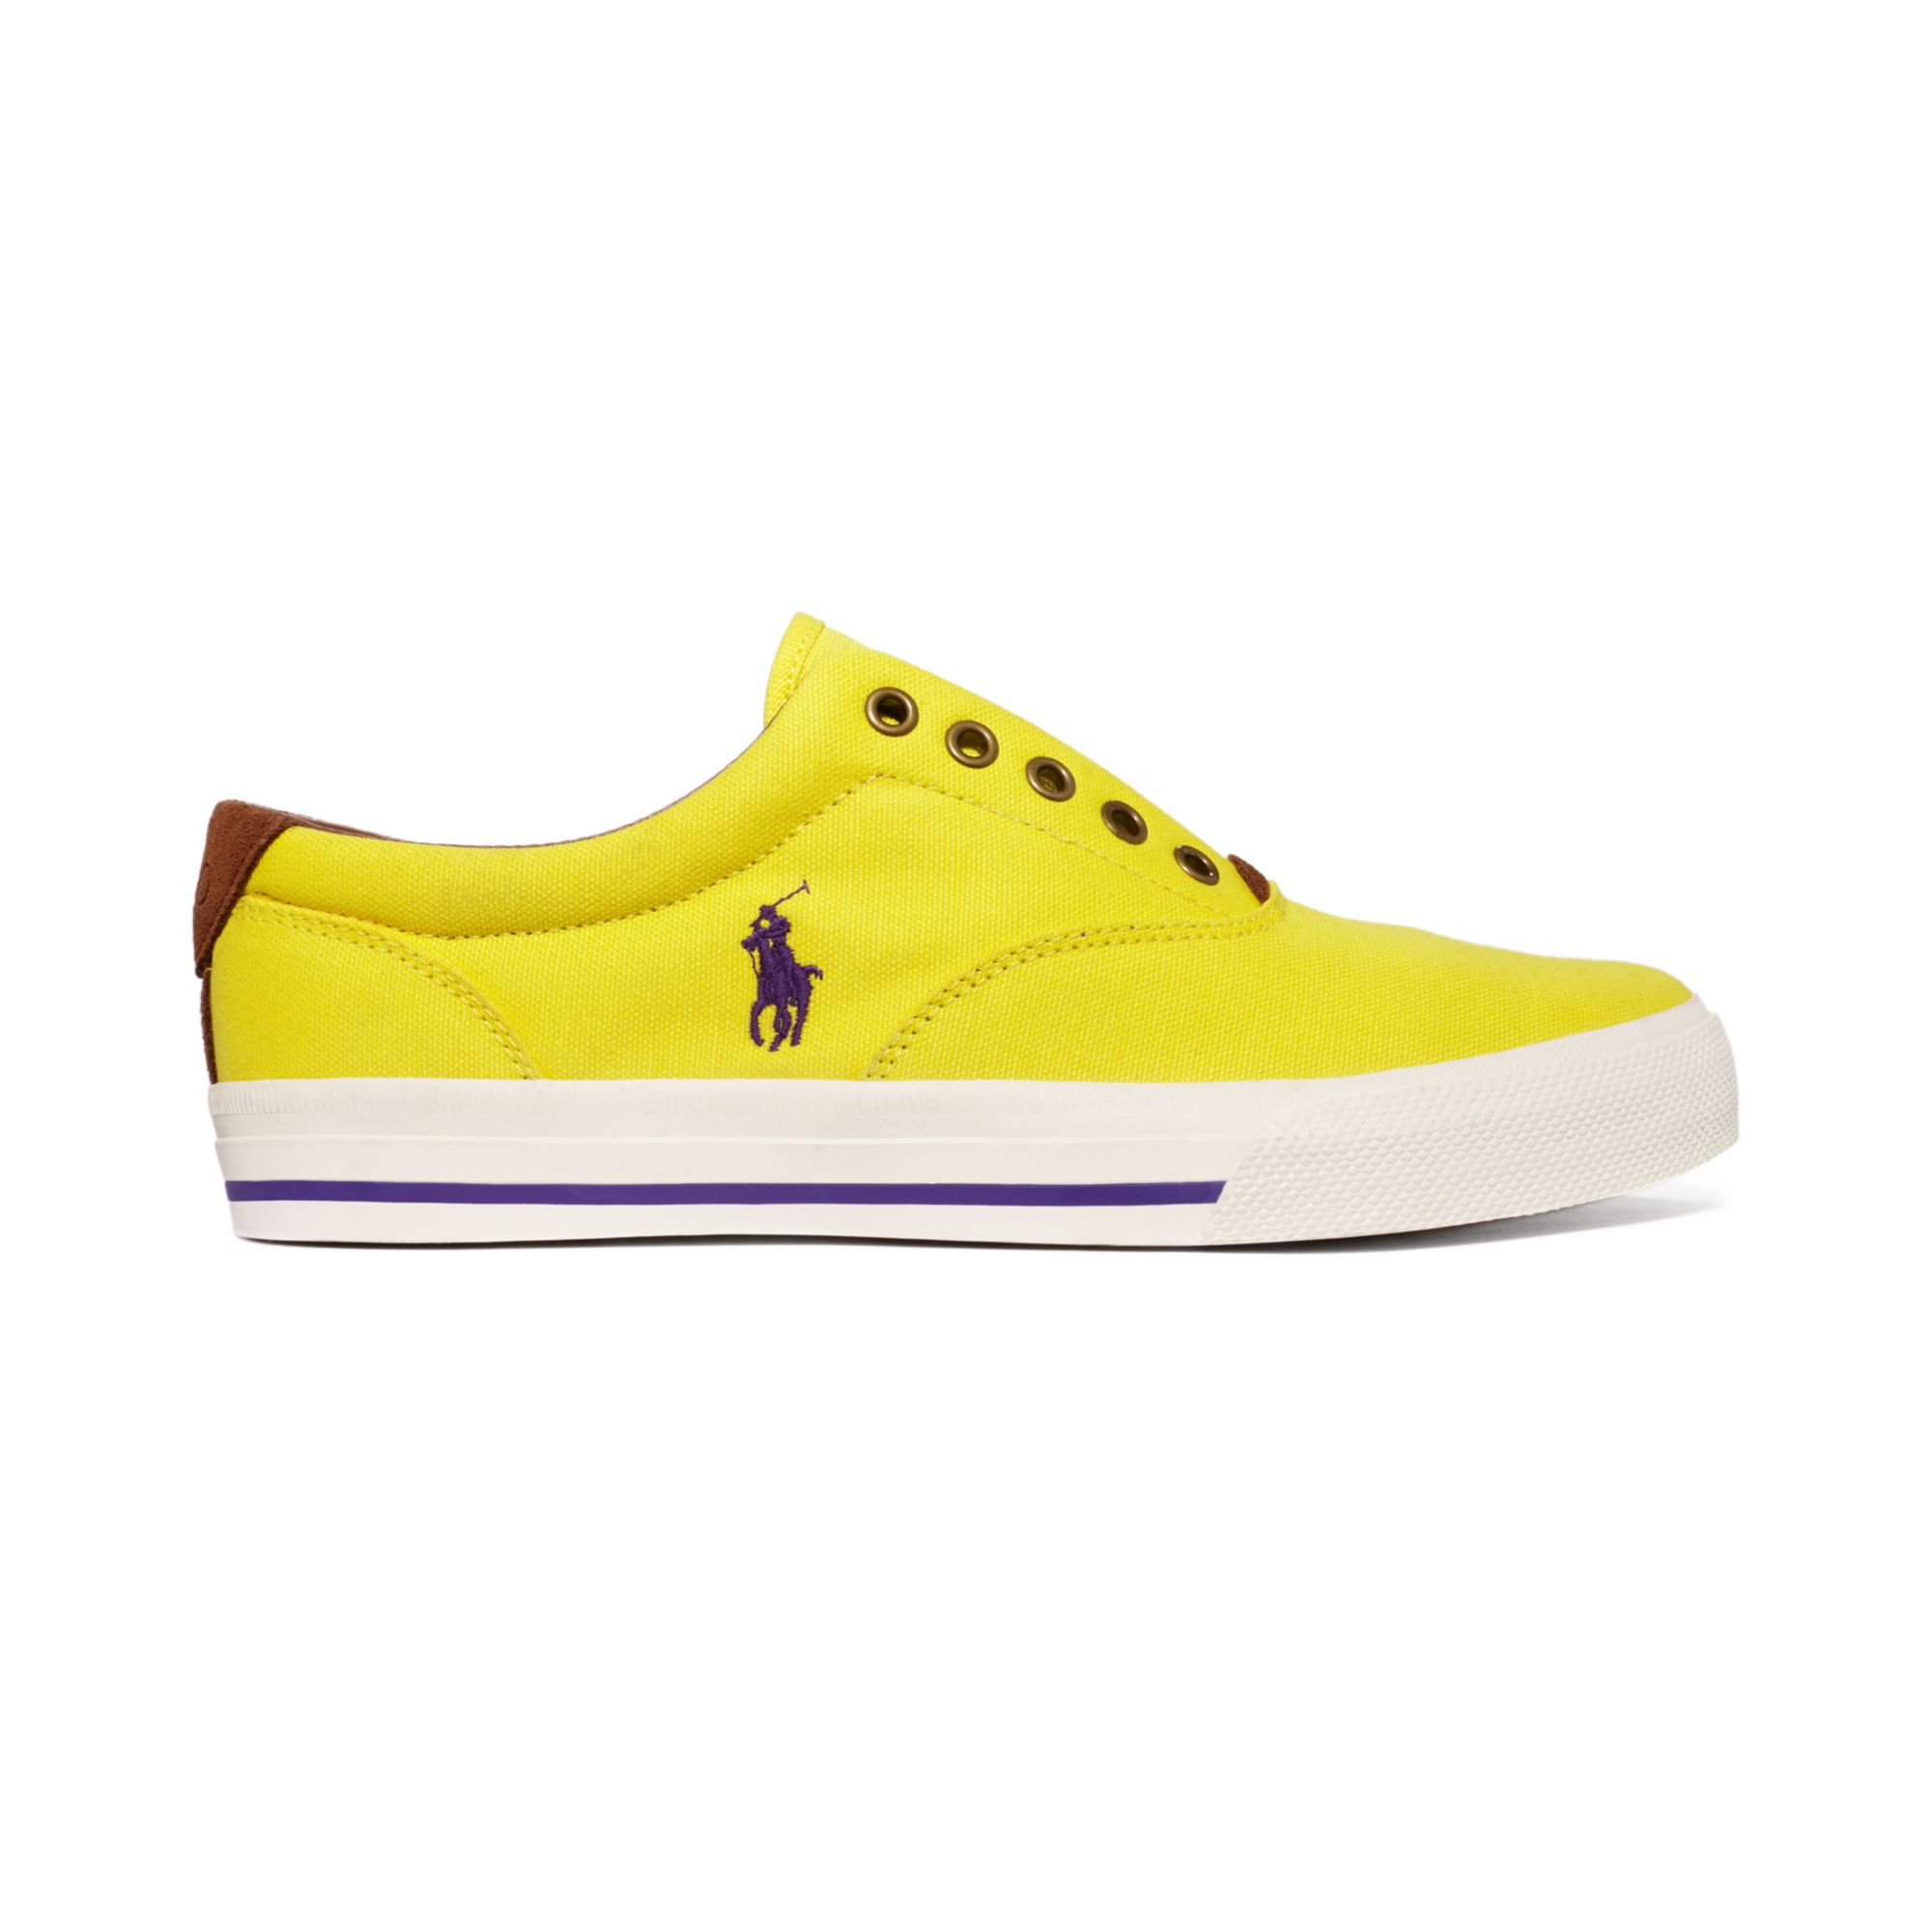 New York Yellow Shoes